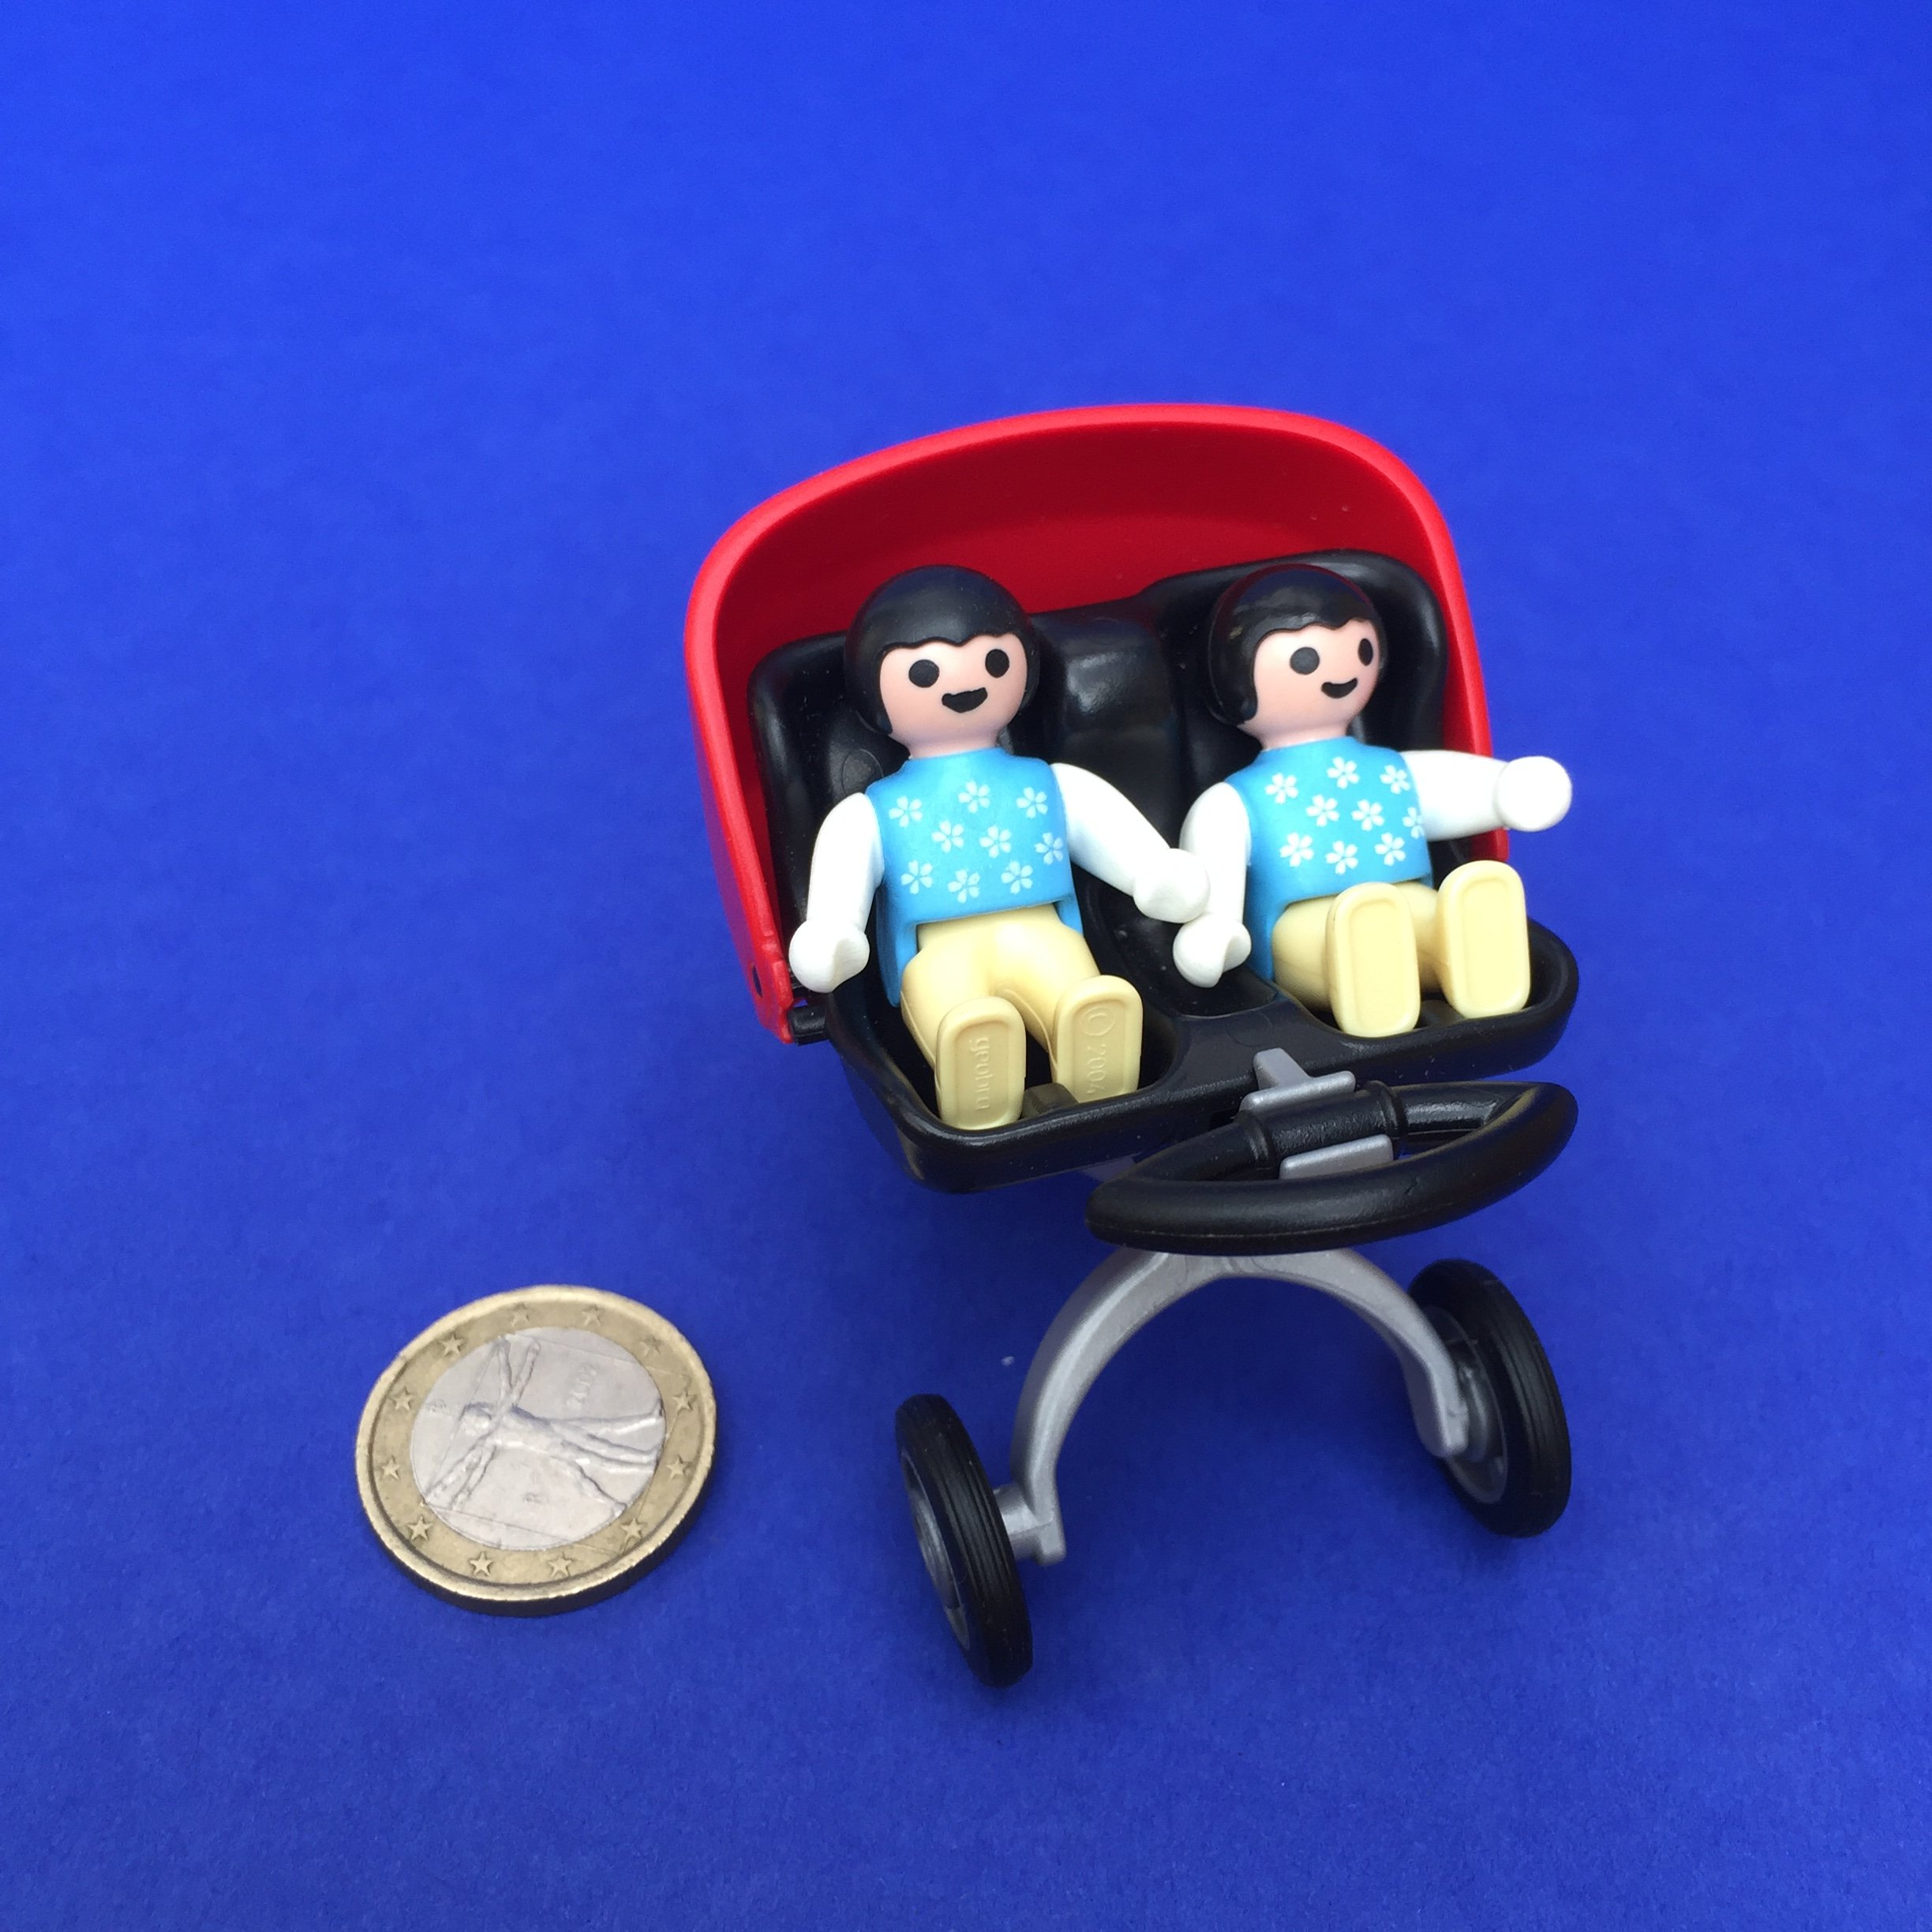 Playmobil tweelingbuggy